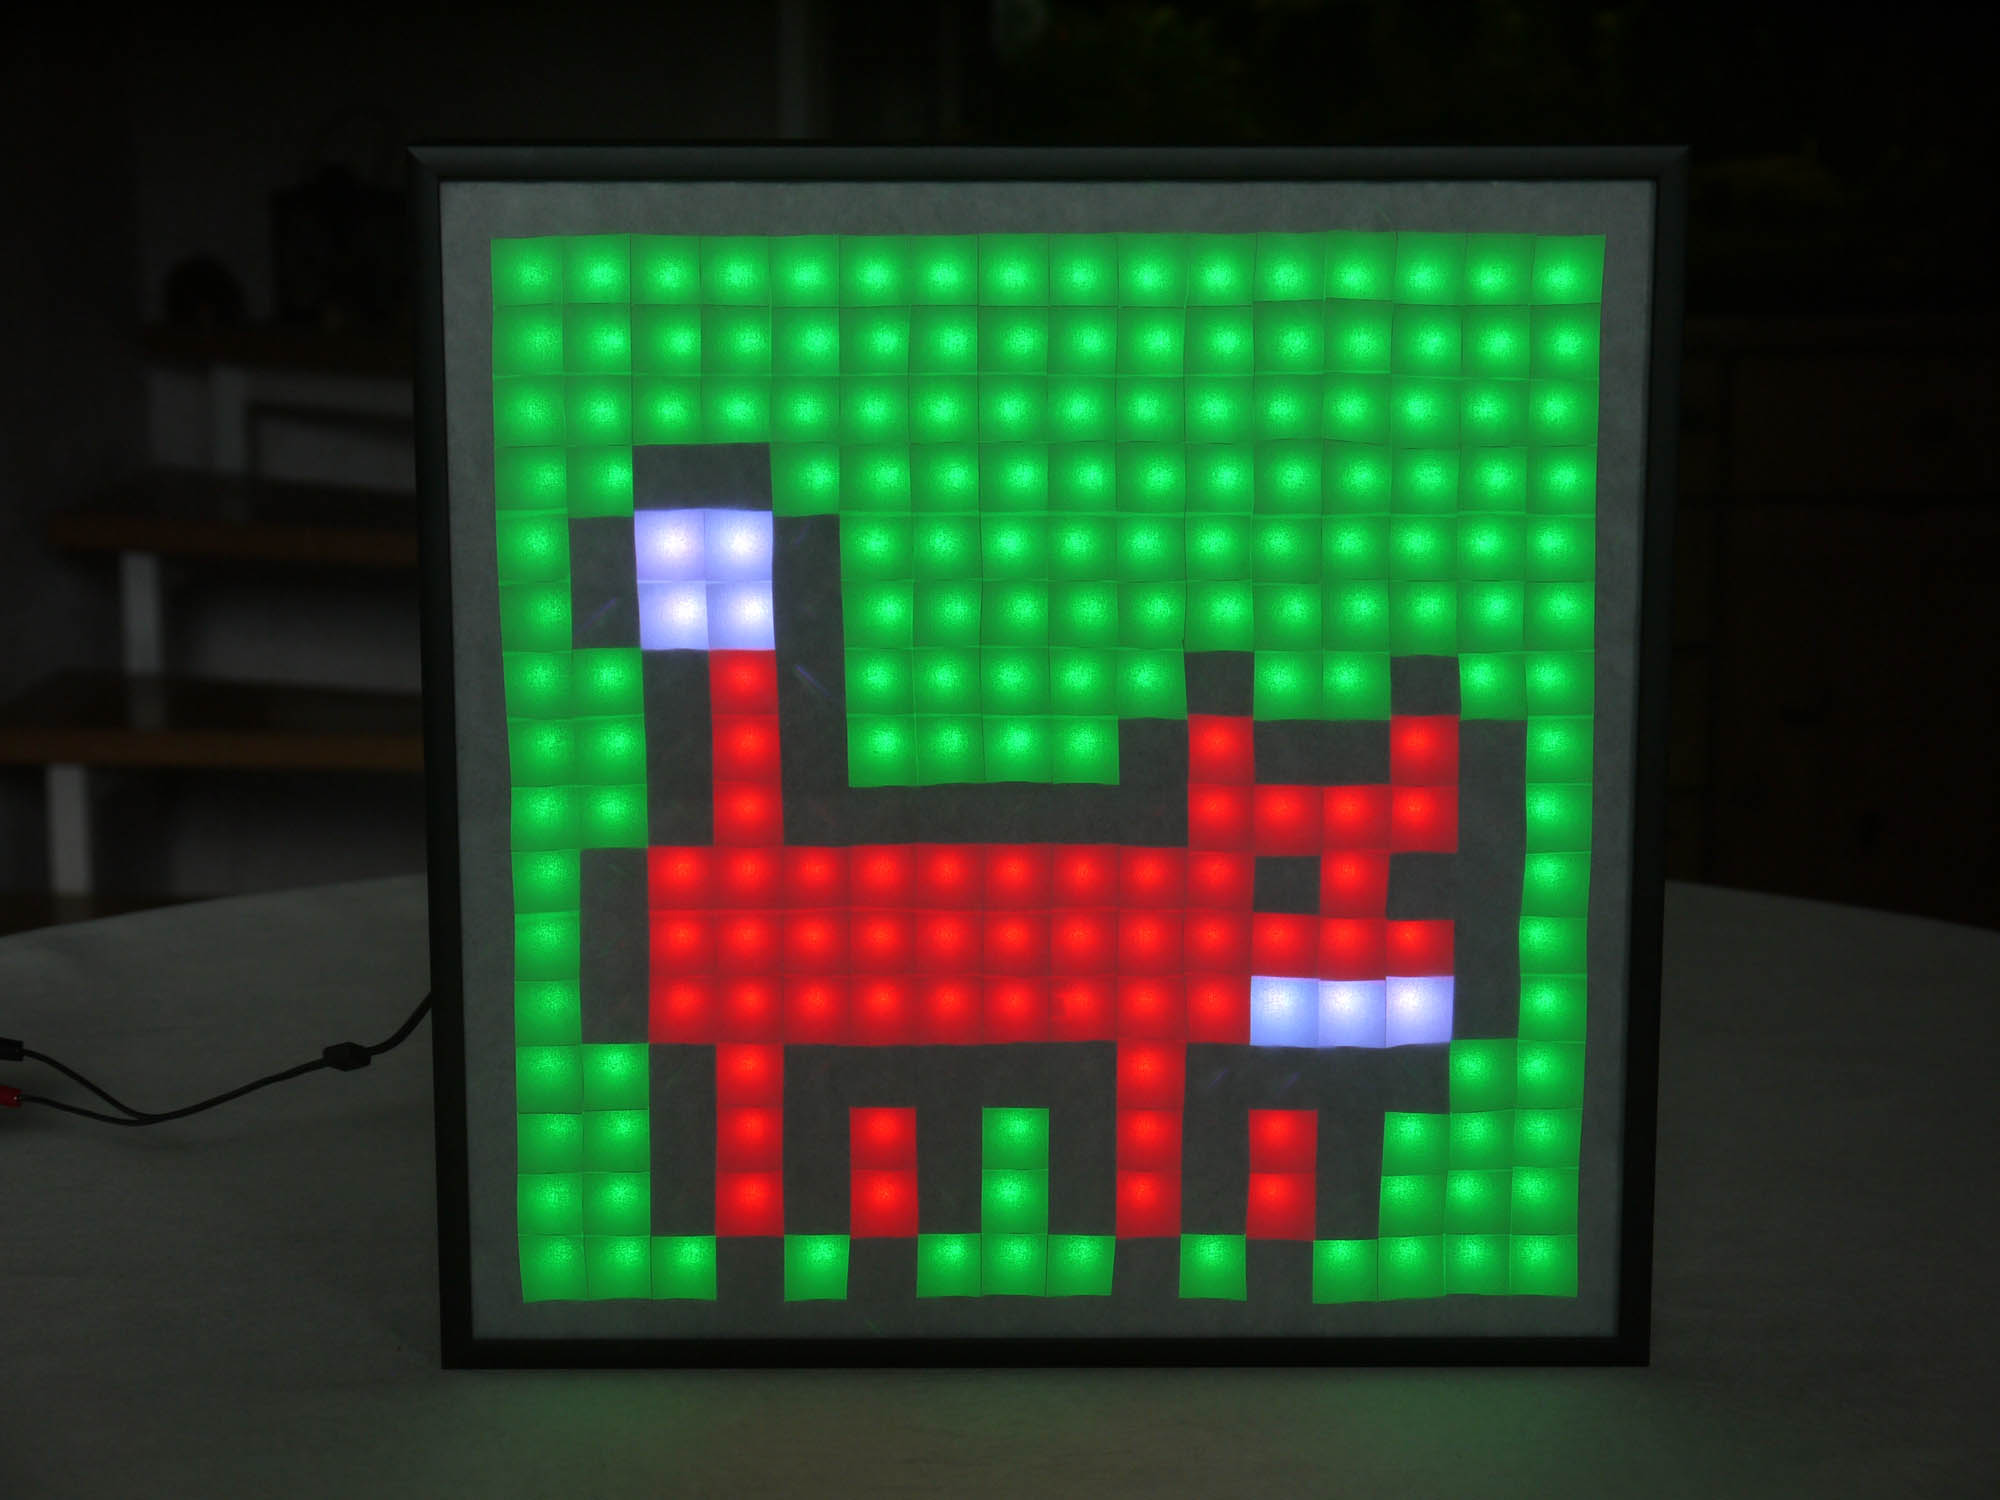 16×16 LED Matrix | Marian's Blog